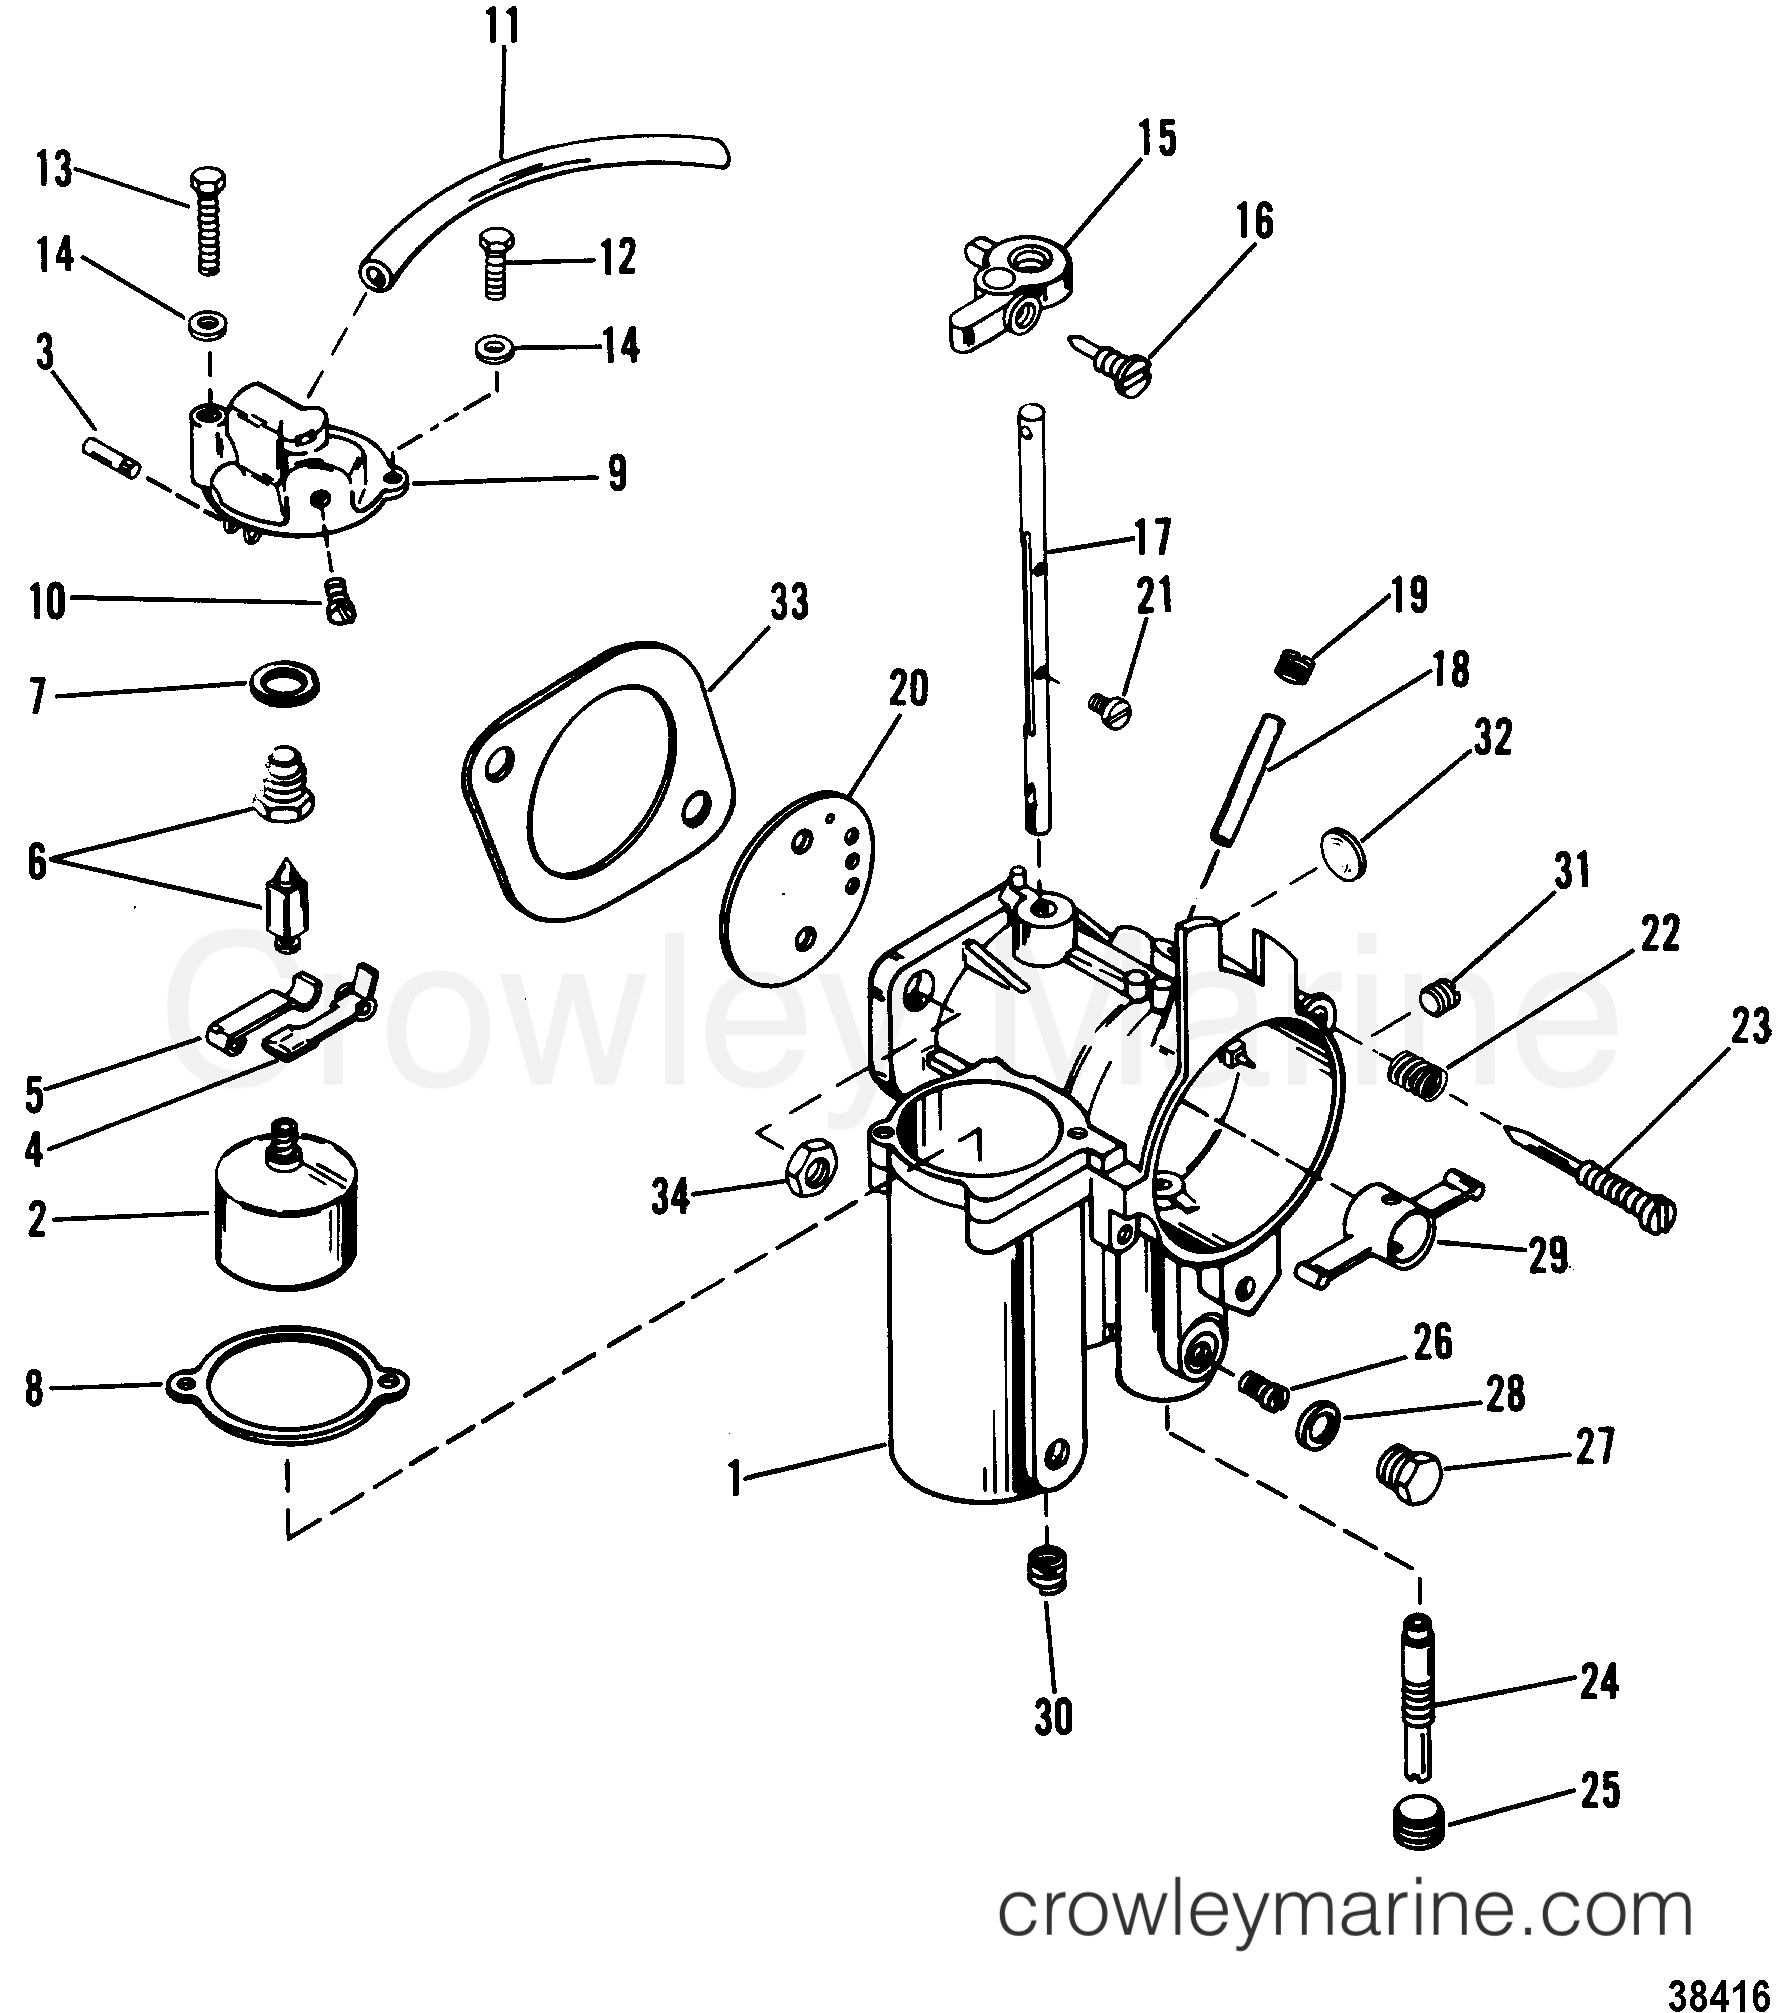 XFtzHcHf carburetor 1980 mariner outboard 115 [elpt] 7115620 crowley marine mariner 115 outboard wiring diagram at alyssarenee.co